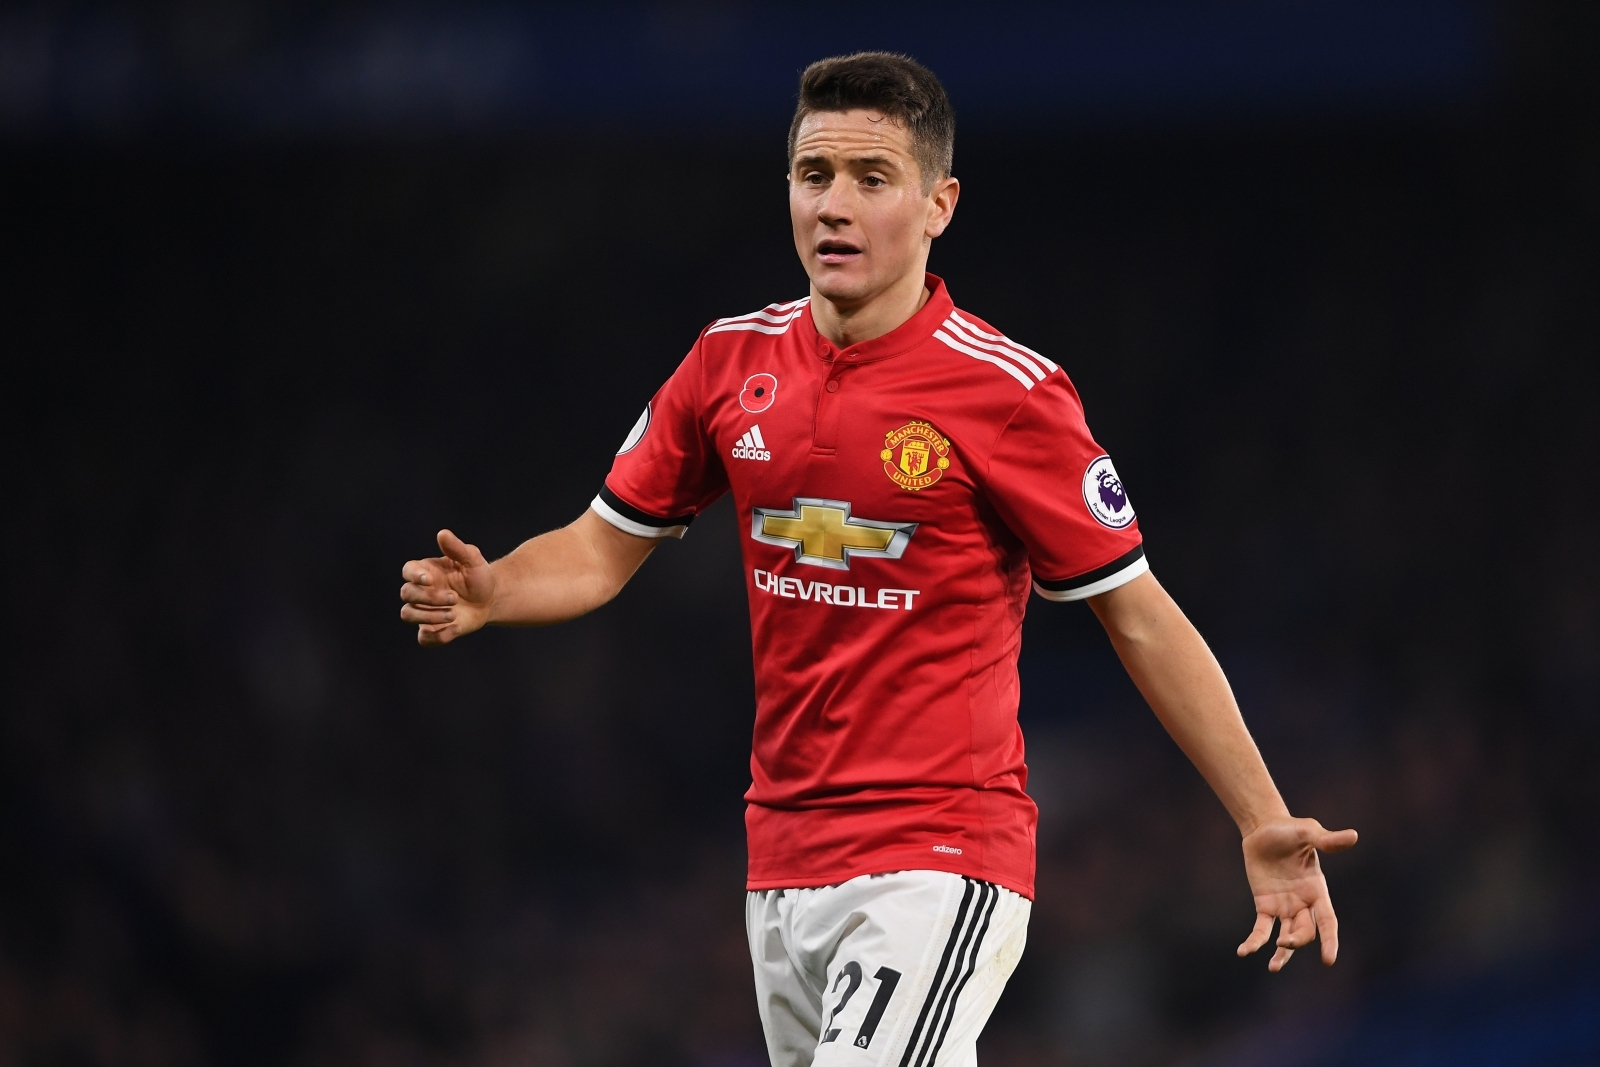 Atletico Madrid to rival Madrid for Manchester United's Ander Herrera?